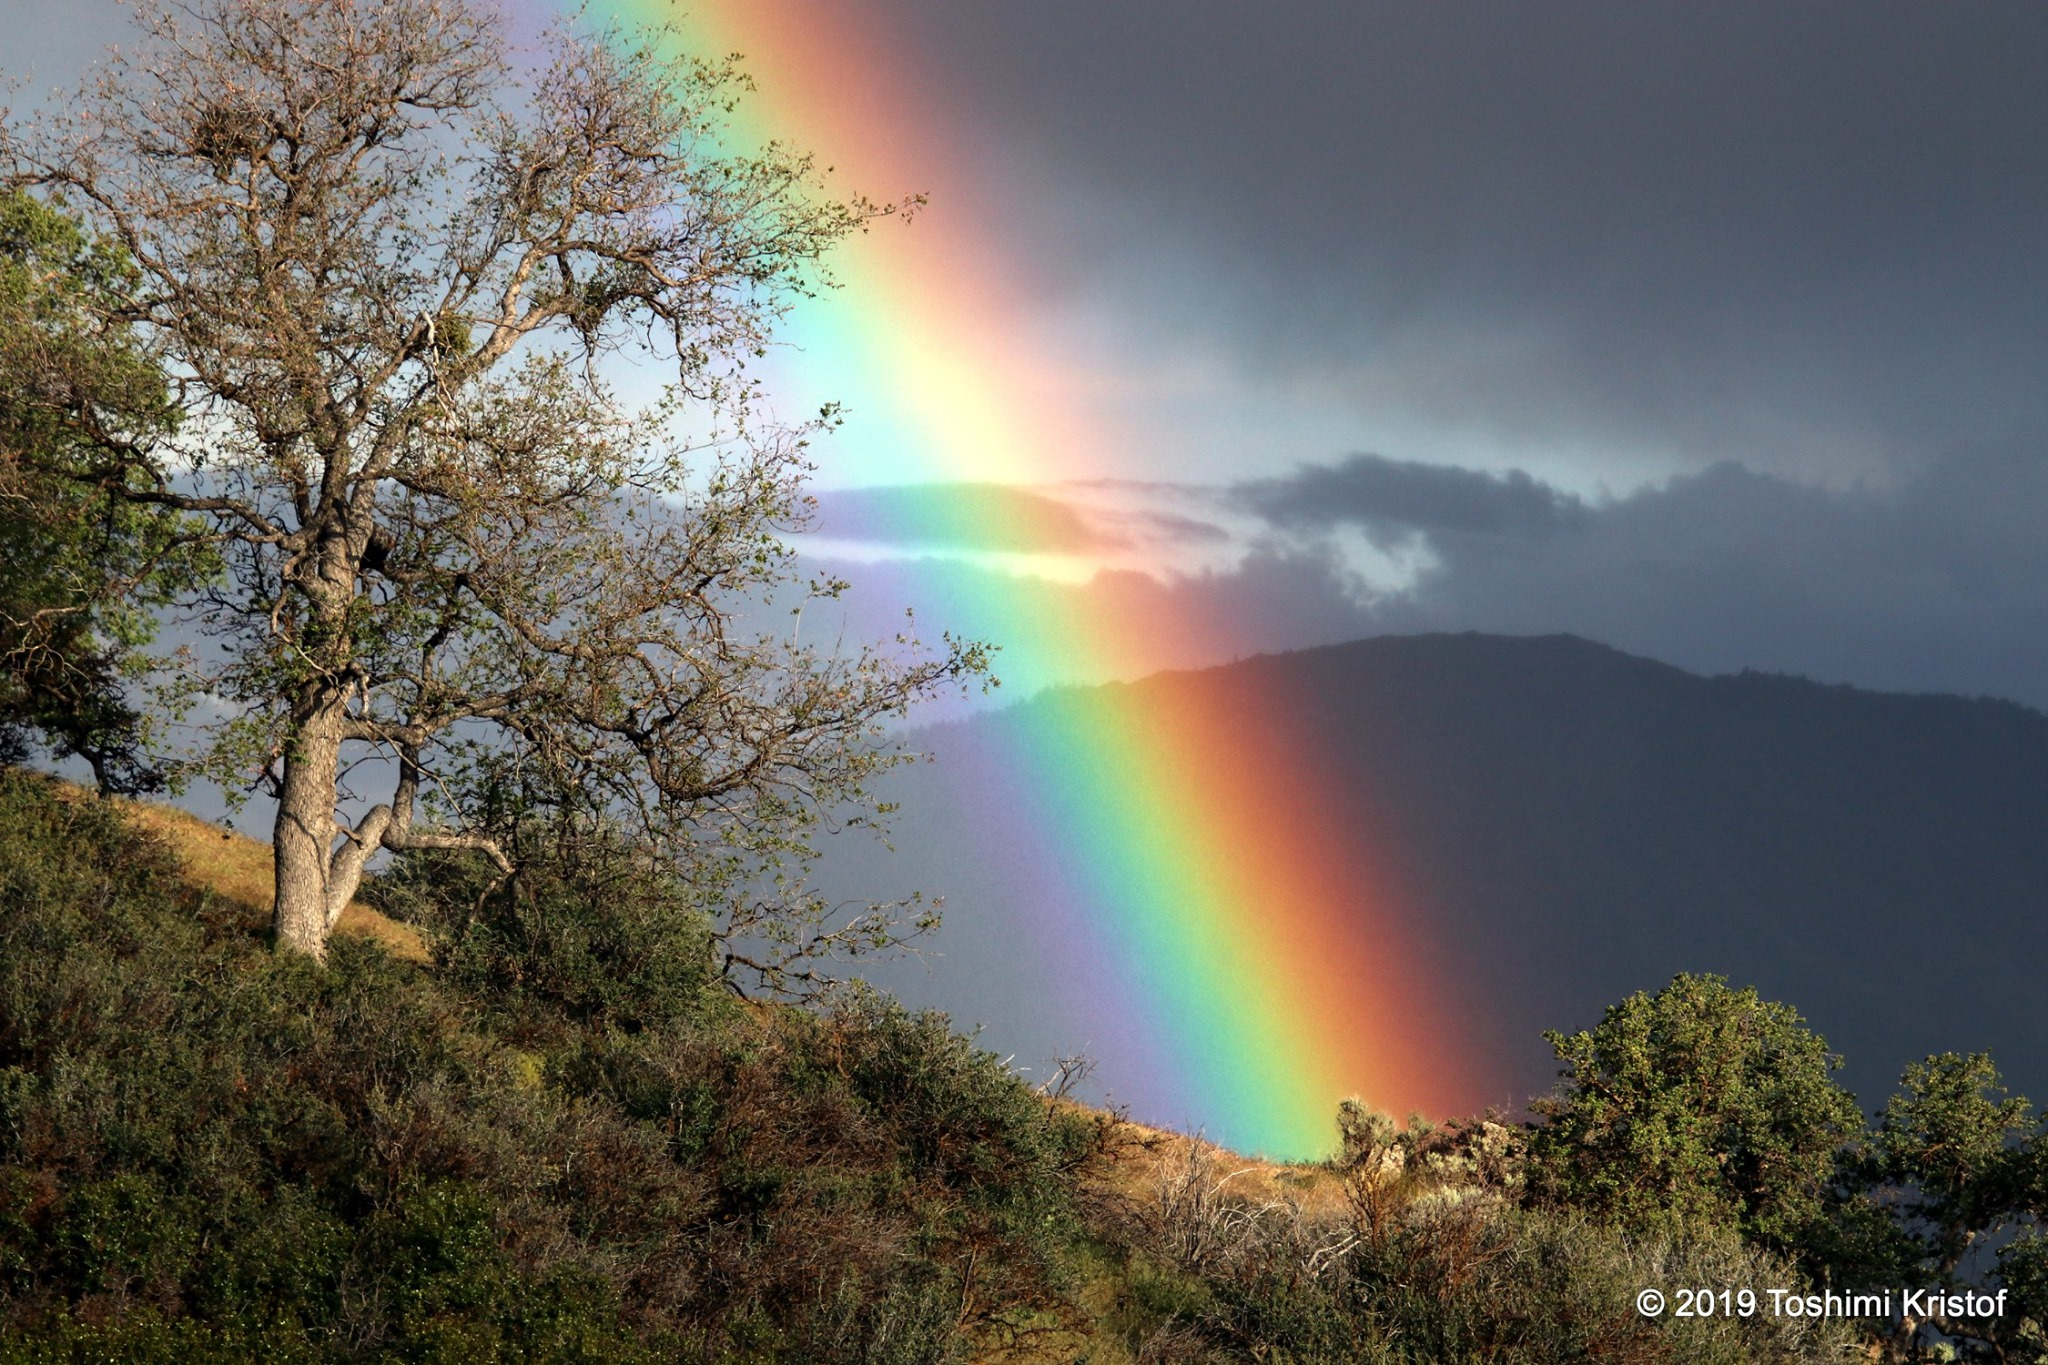 The setting sun lights an oak tree as a brilliant rainbow shines against the darkness of hills in the background